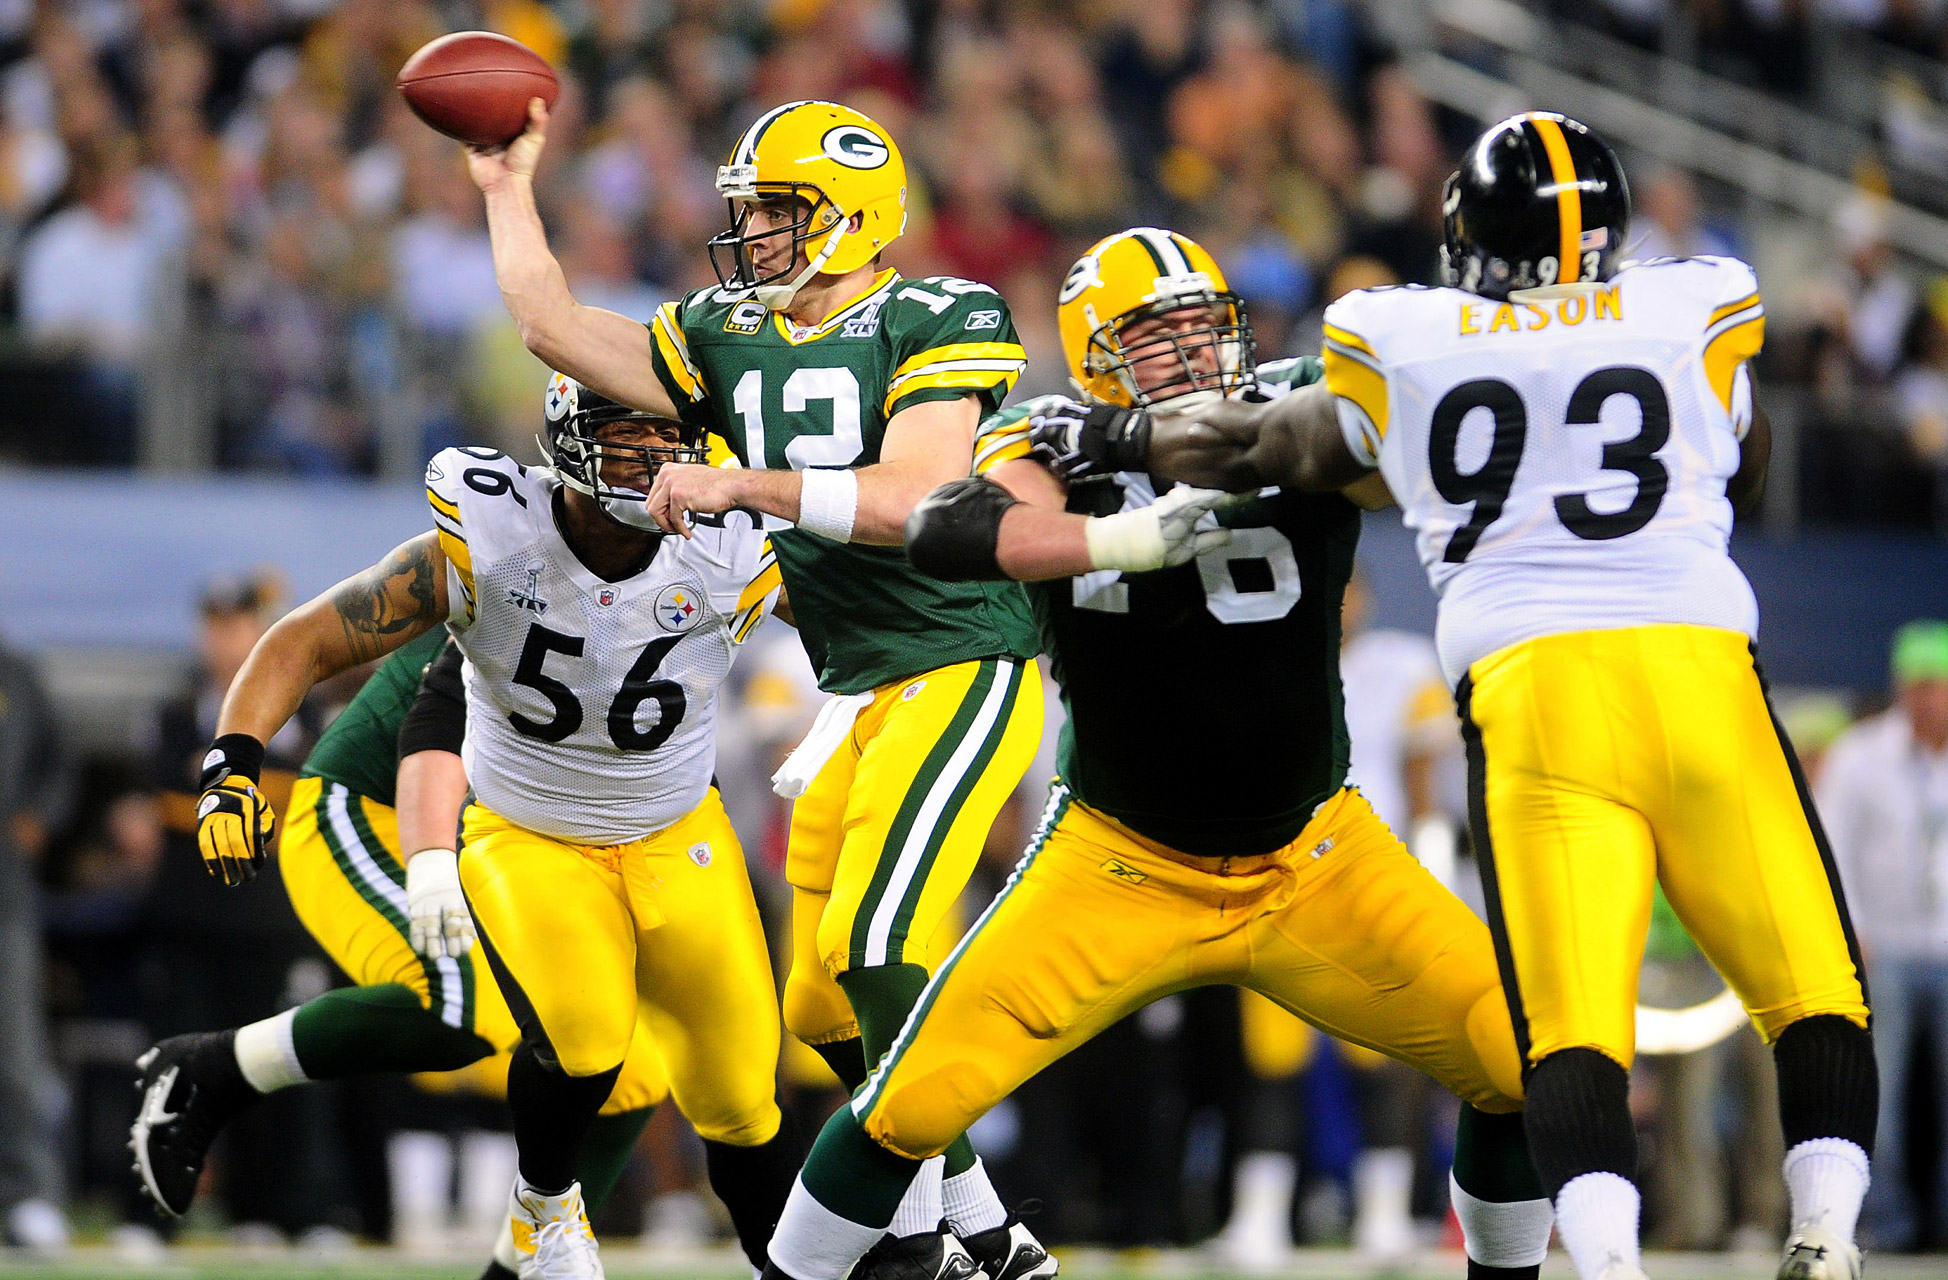 Aaron Rodgers - Super Bowl XLV (24/39, 304 yards, 3 TDs)